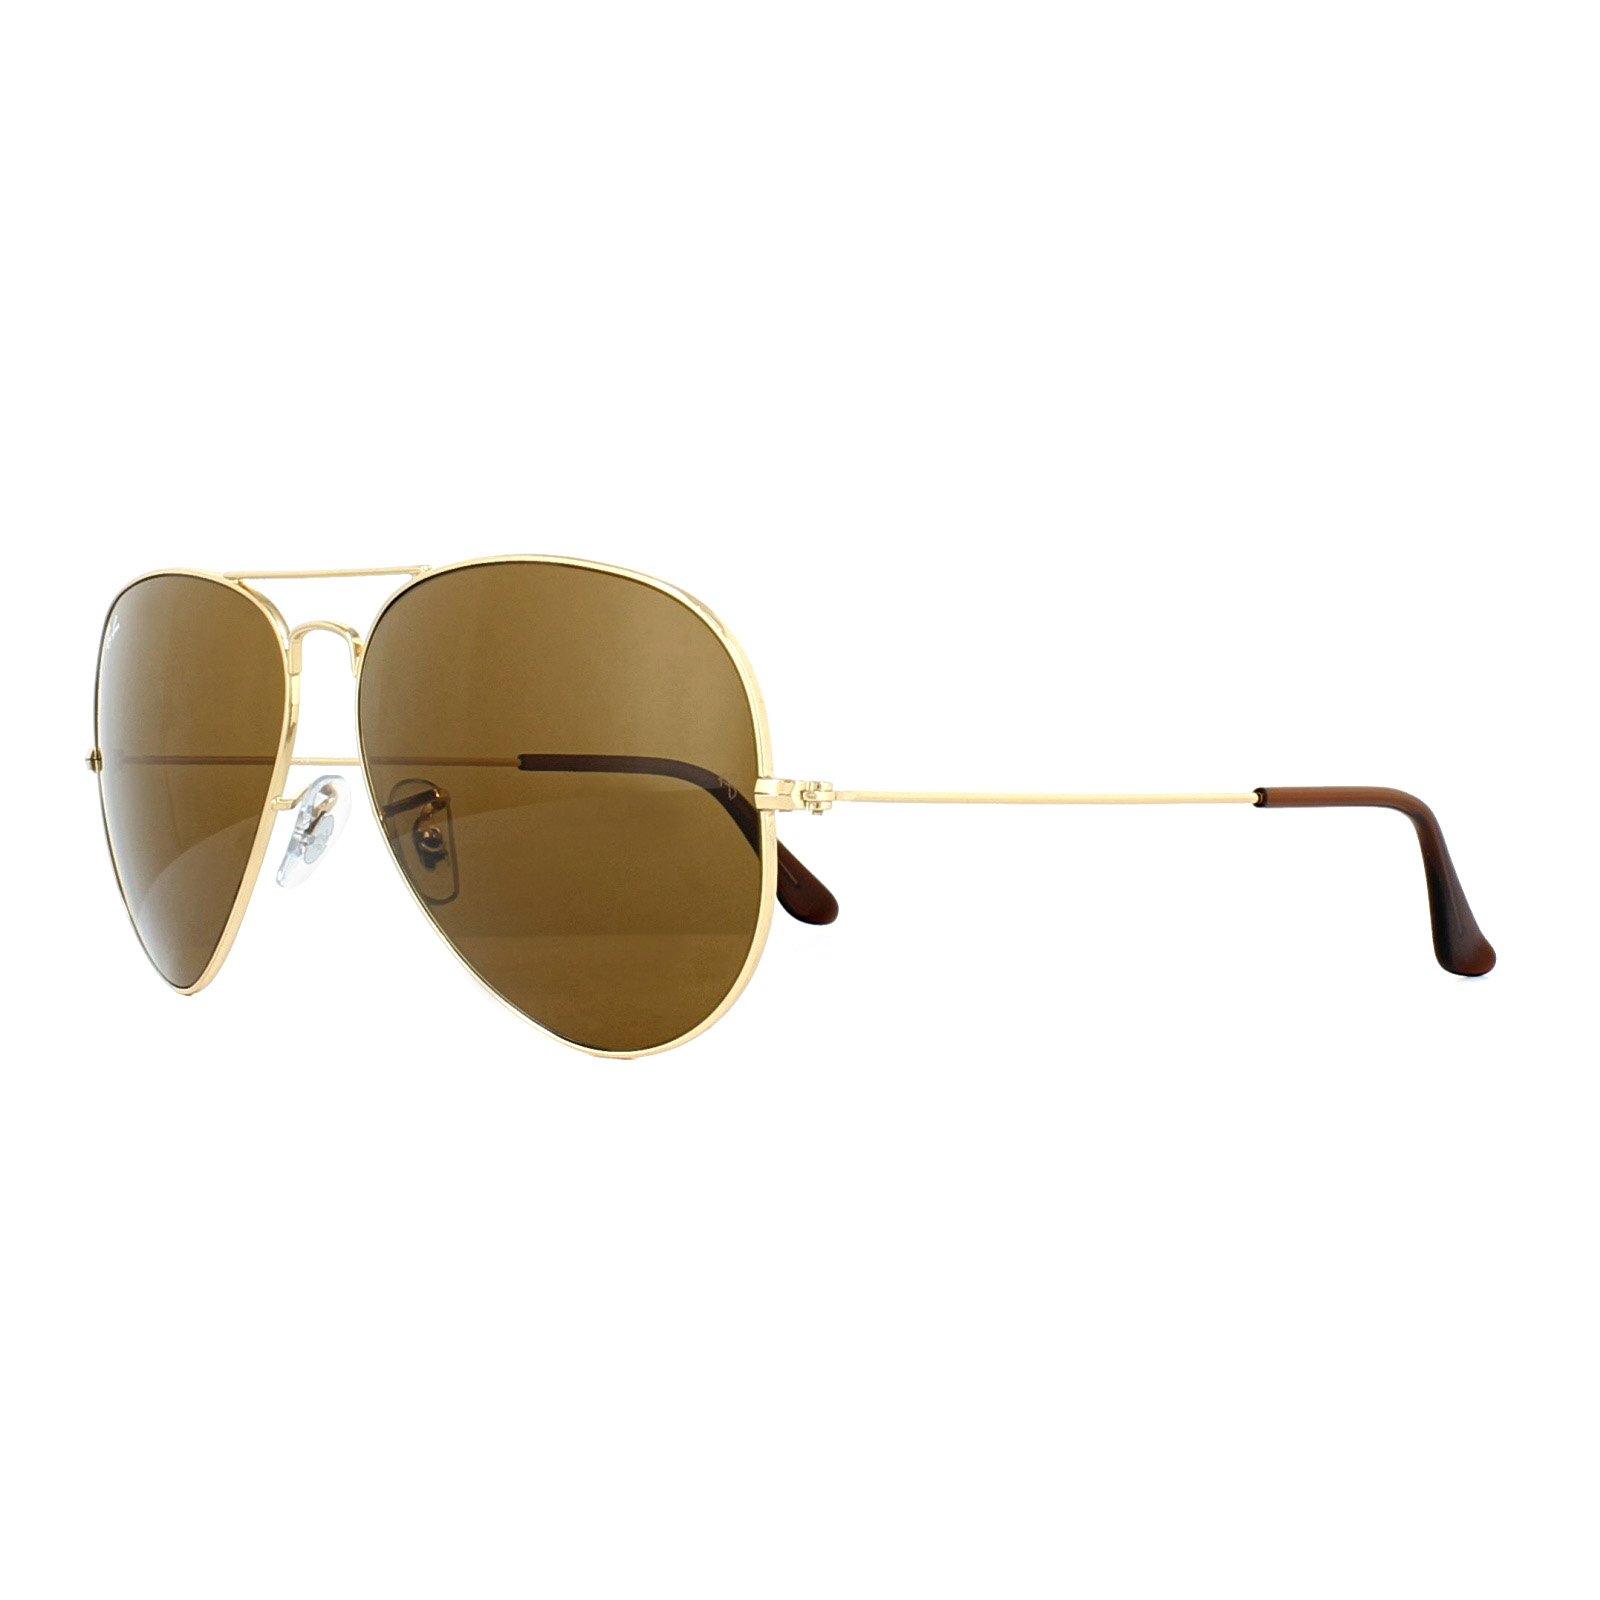 2826dc4f19 Ray-Ban Sunglasses Aviator 3025 001 33 Gold Brown 805289178330